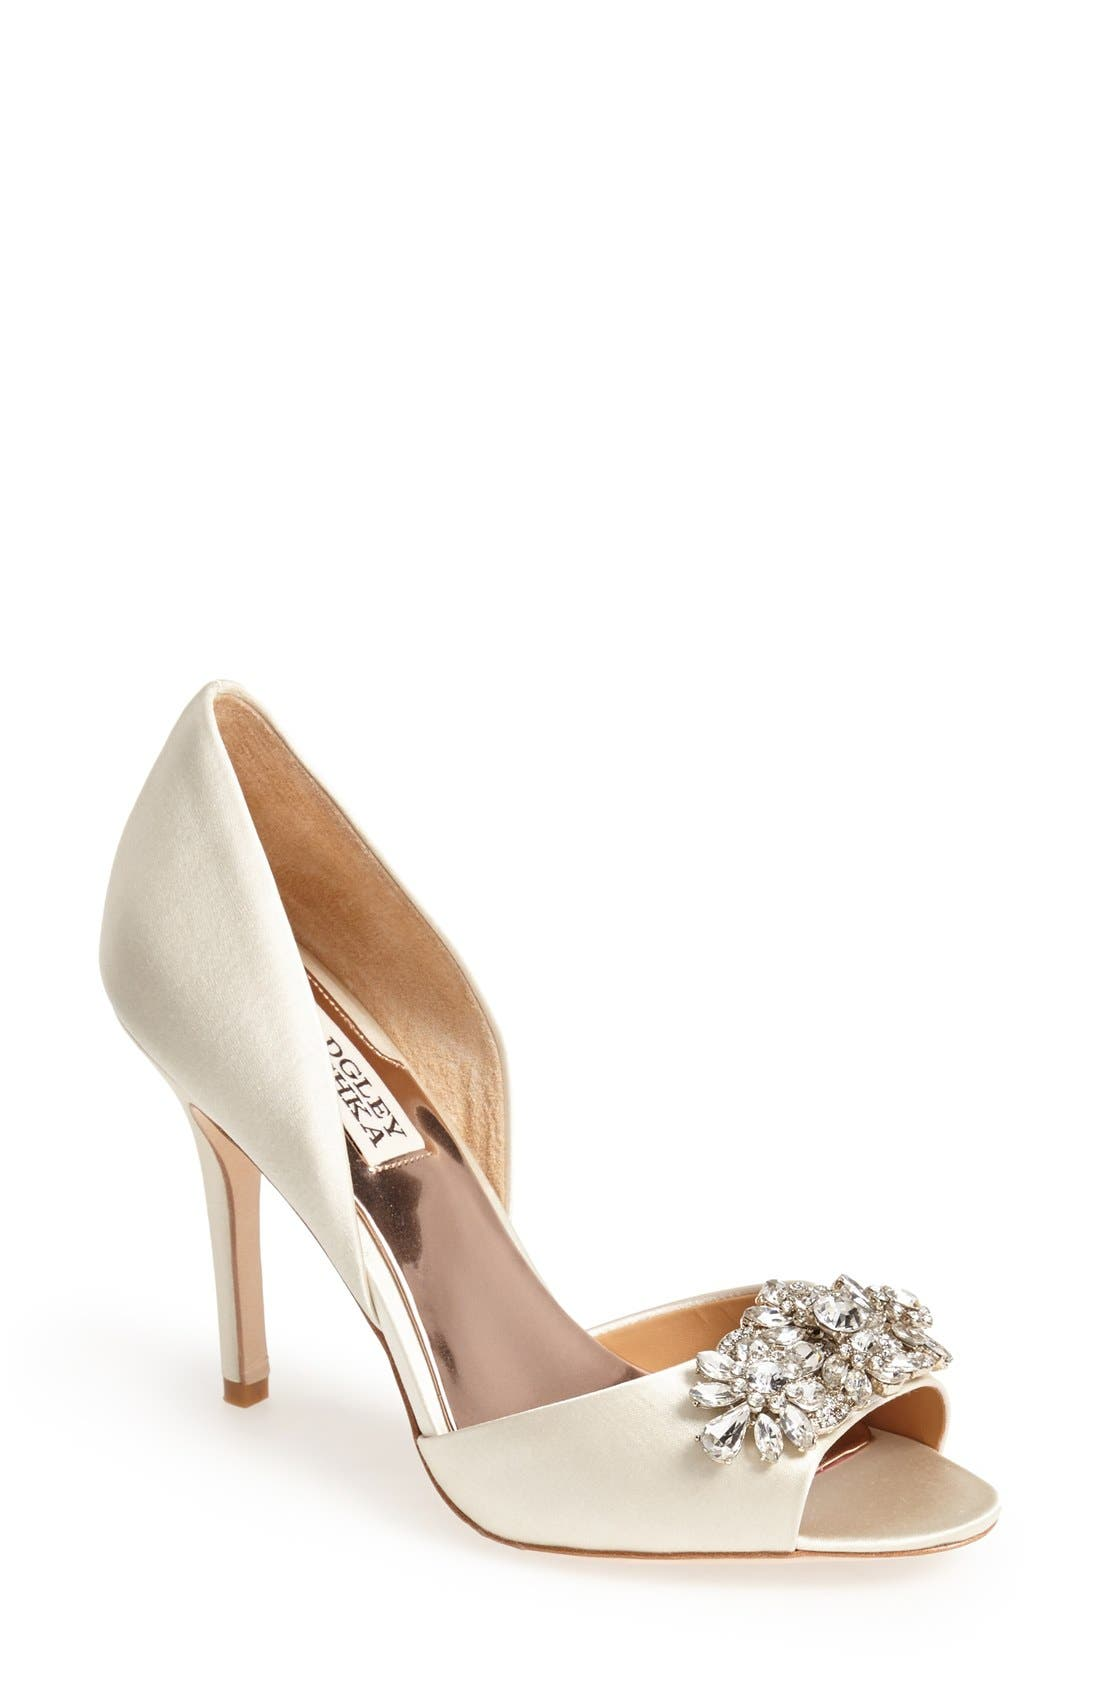 BADGLEY MISCHKA Giana Satin dOrsay Pump